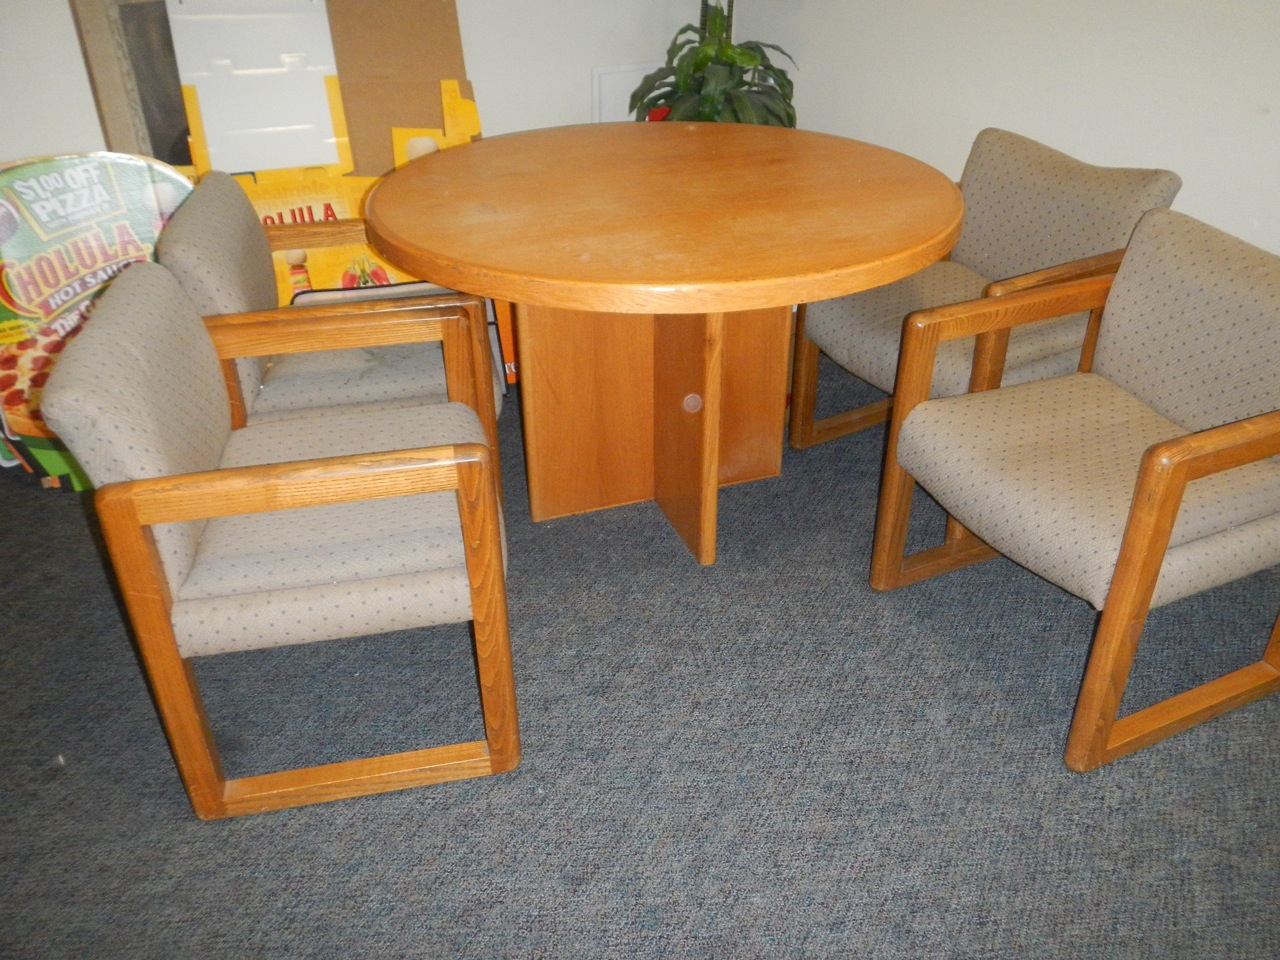 ... Office Moving: Furniture For Sale In Santa Ana, CA Round Oak